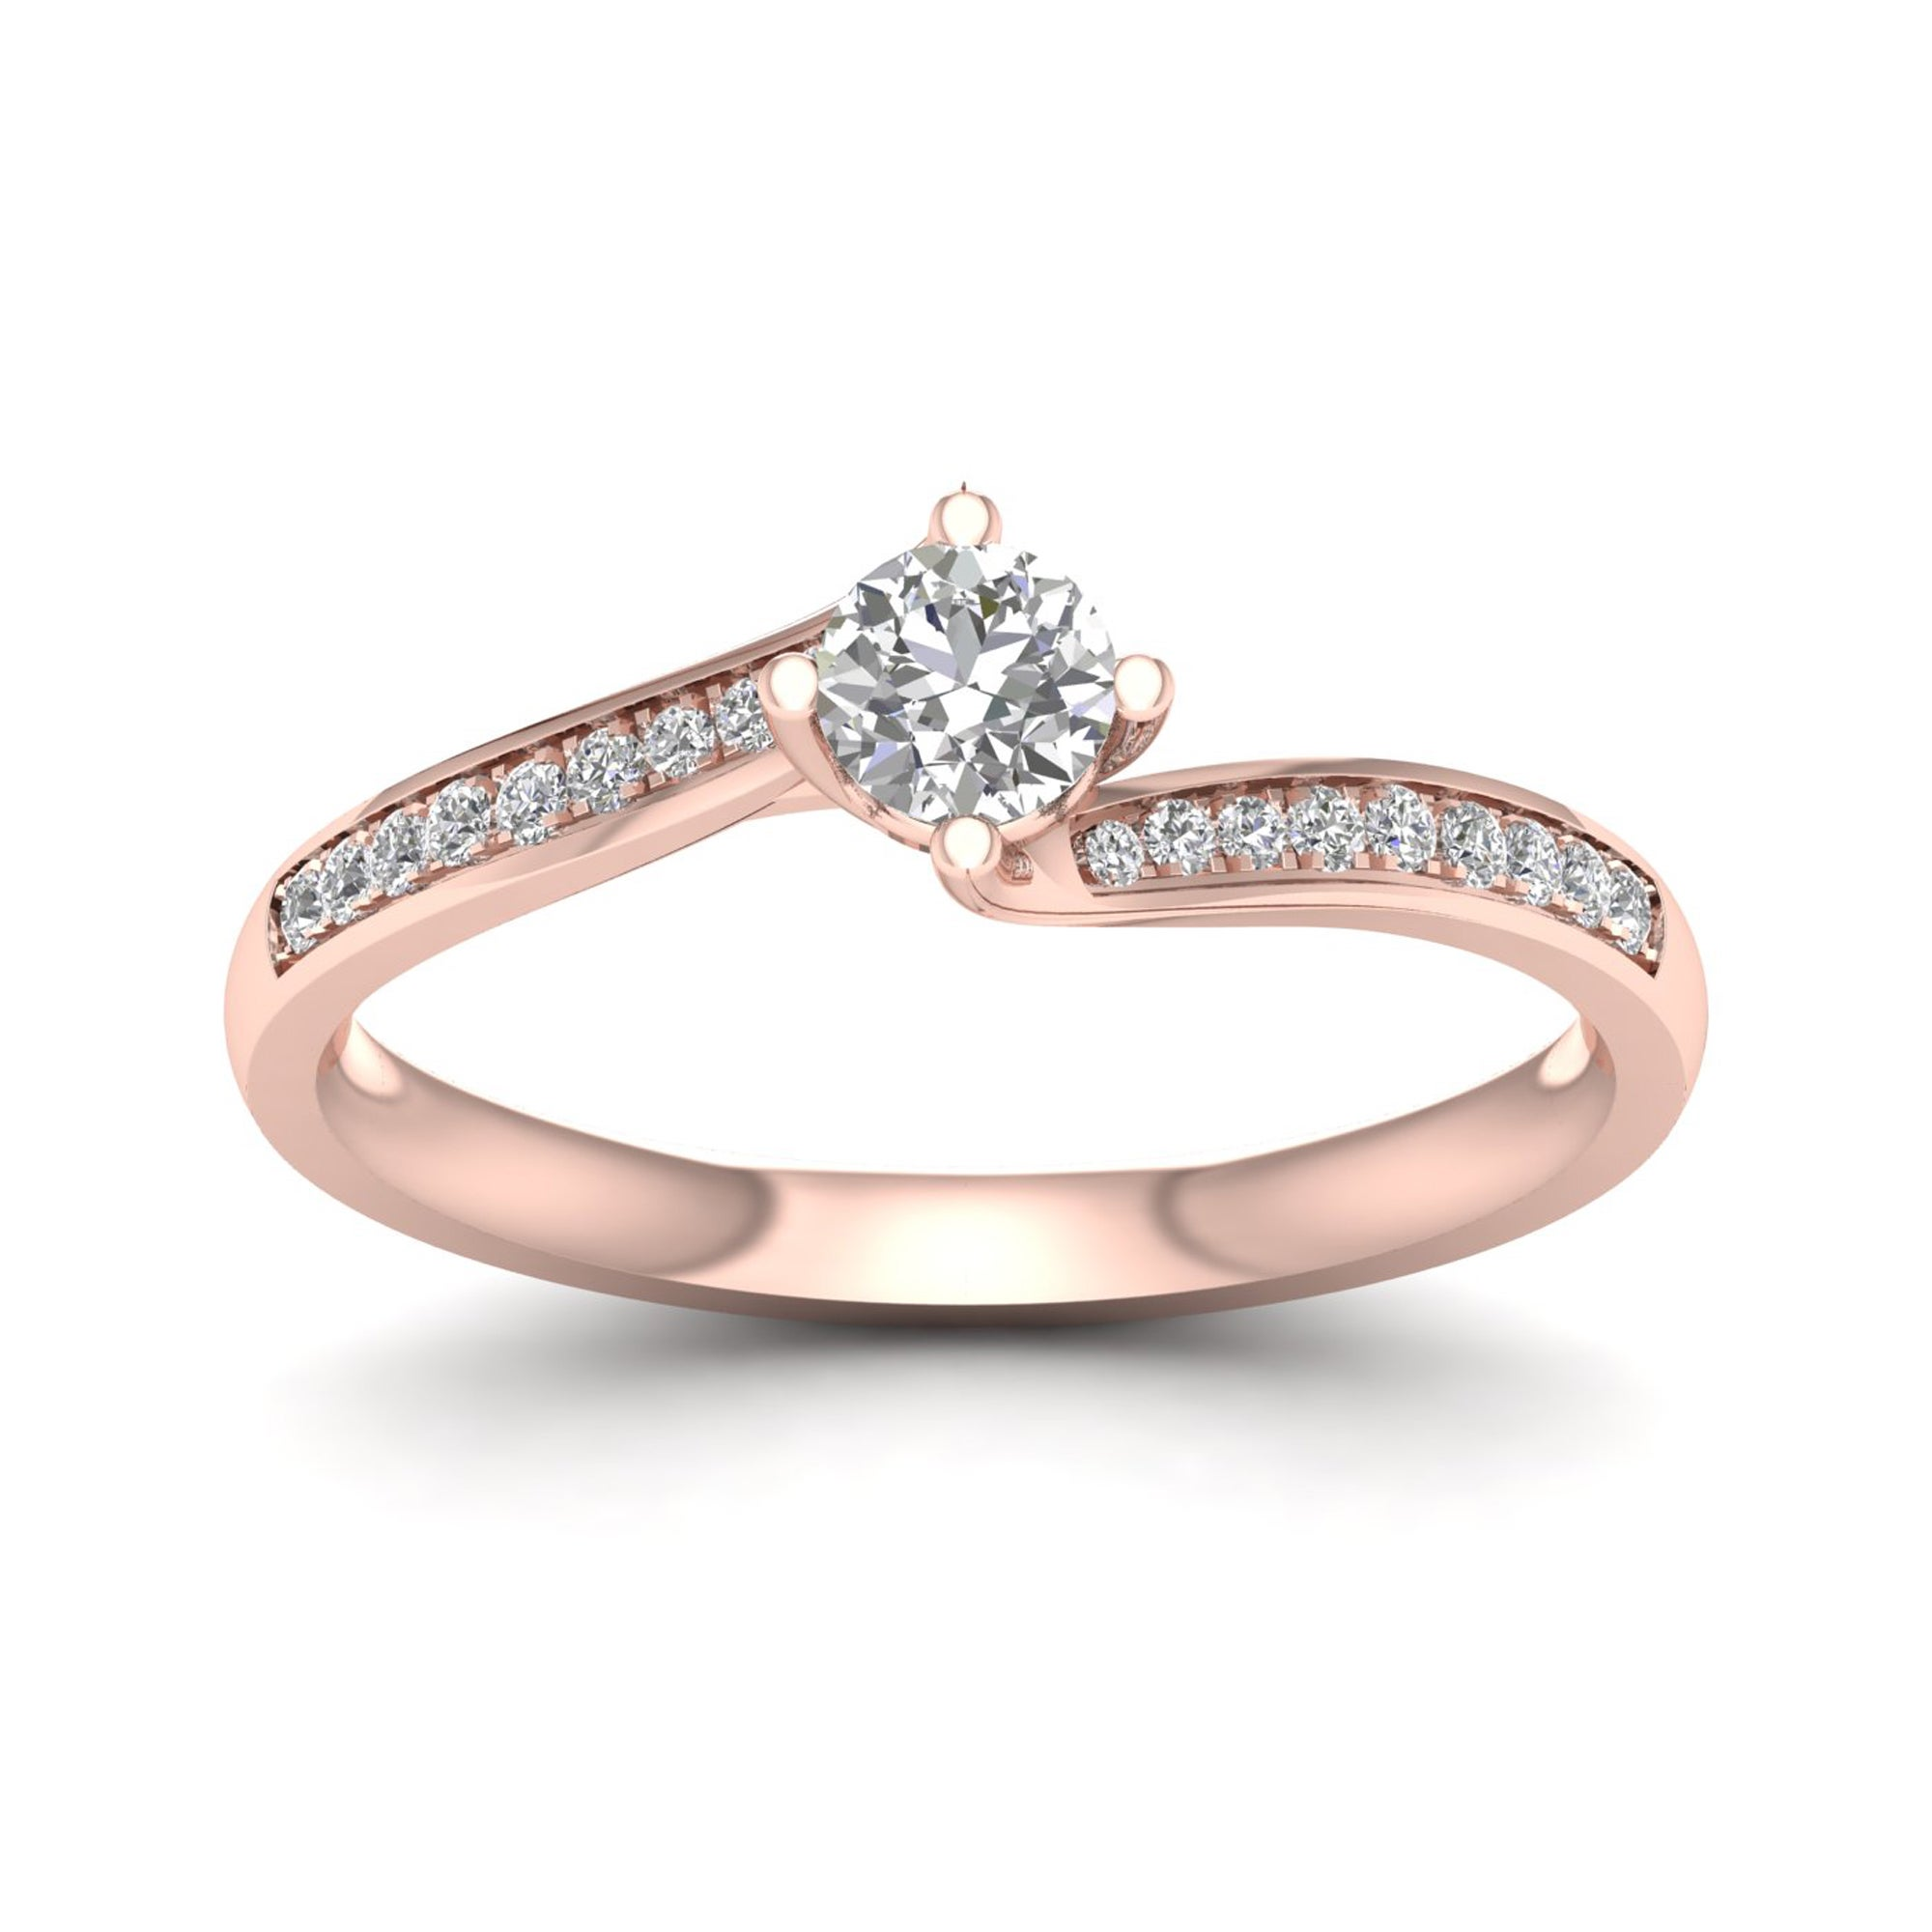 petite wedding slender the ring arms engagement this bypass held curving of between rings band pin s gracefully